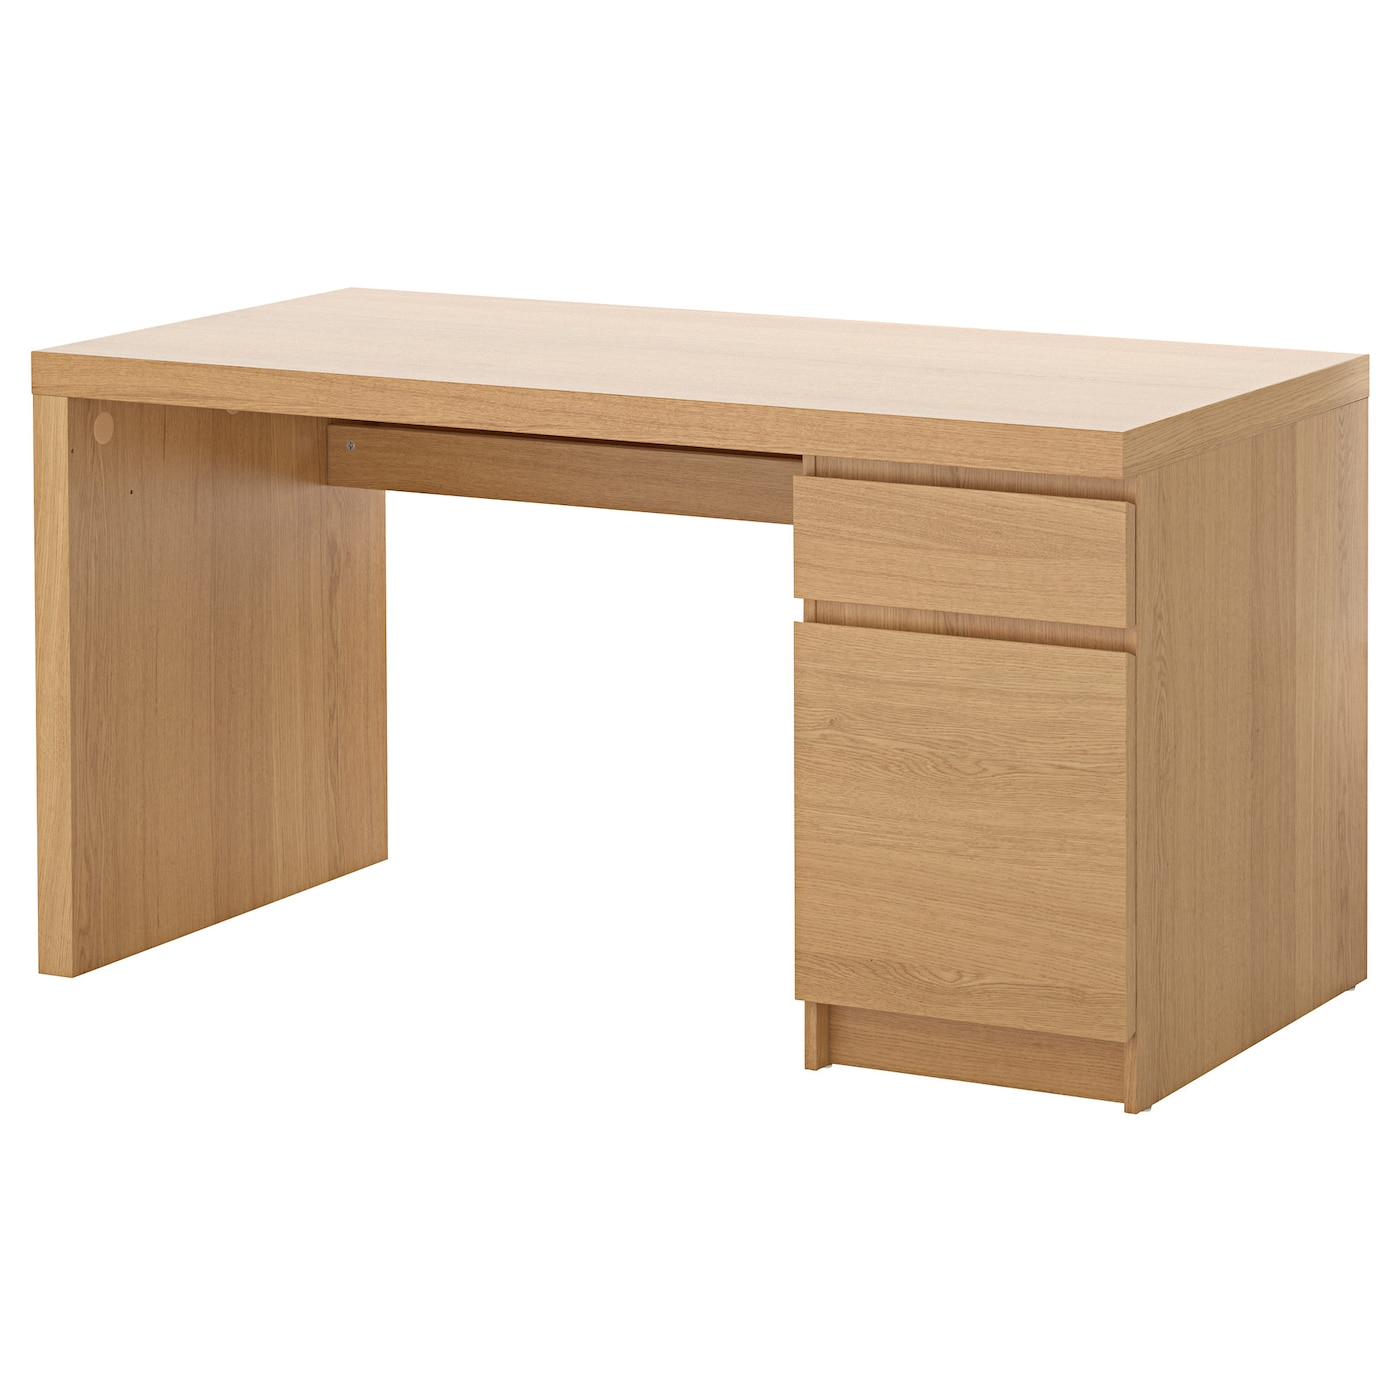 malm desk oak veneer 140 x 65 cm ikea. Black Bedroom Furniture Sets. Home Design Ideas